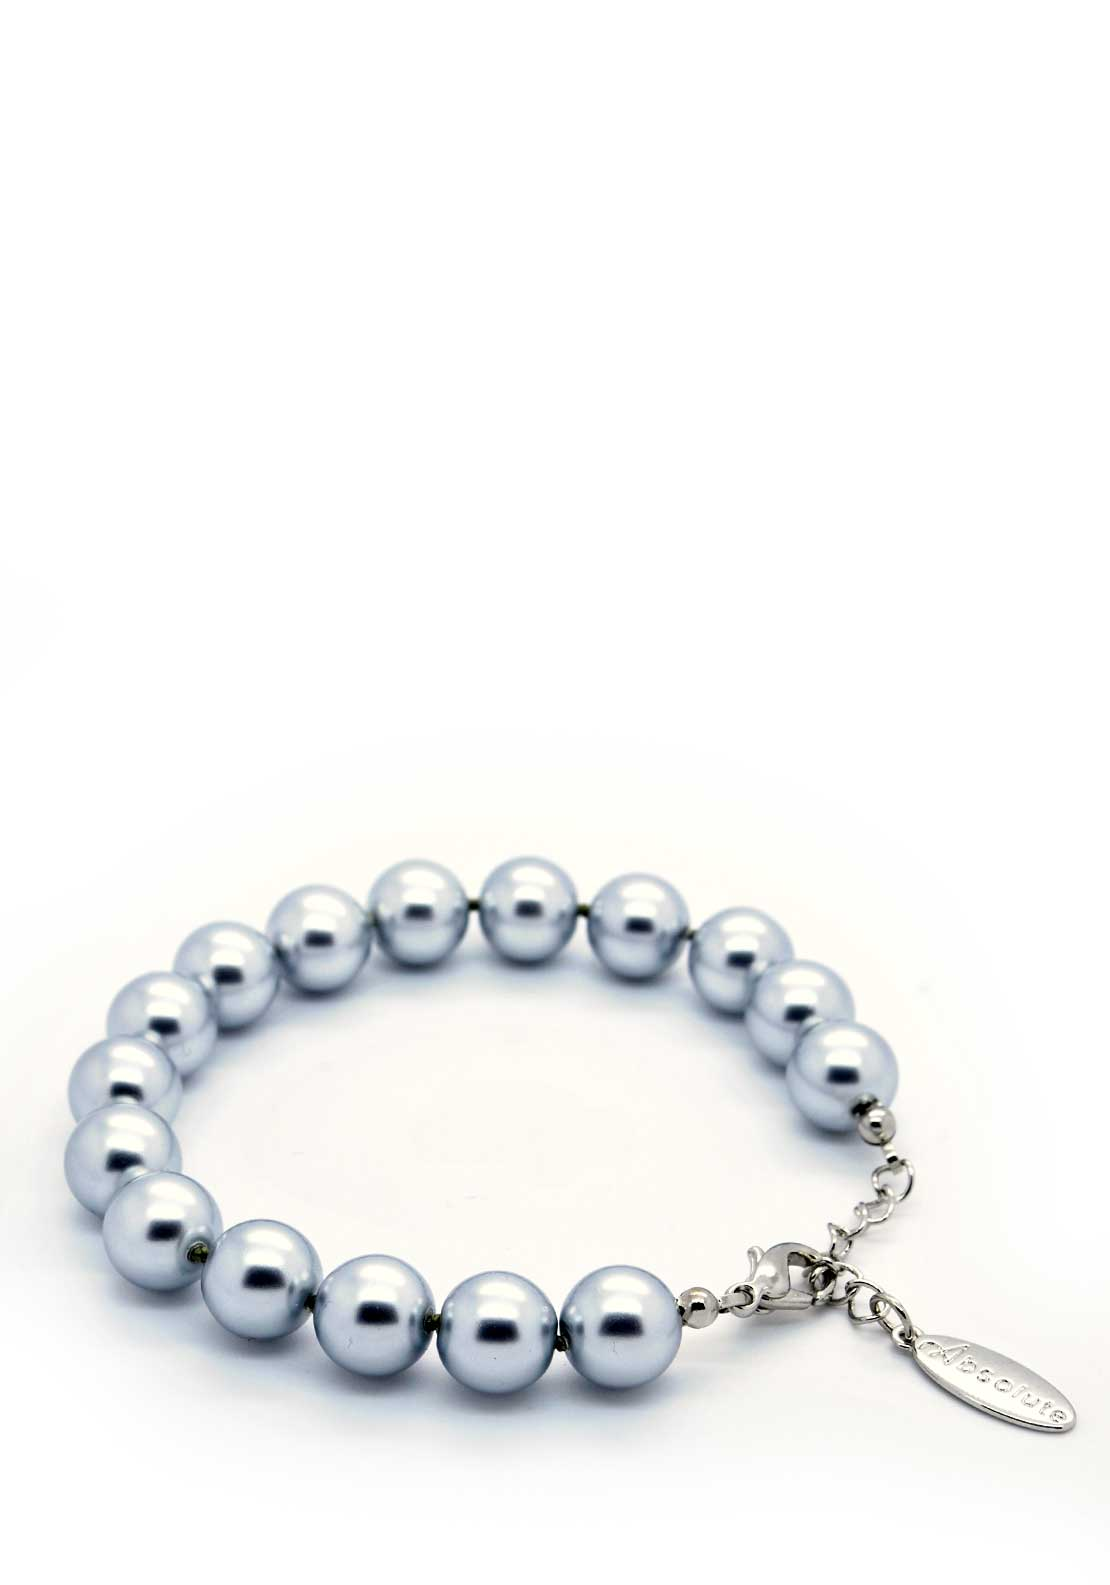 Absolute Jewellery Pearl Bracelet with Silver fixings, Grey